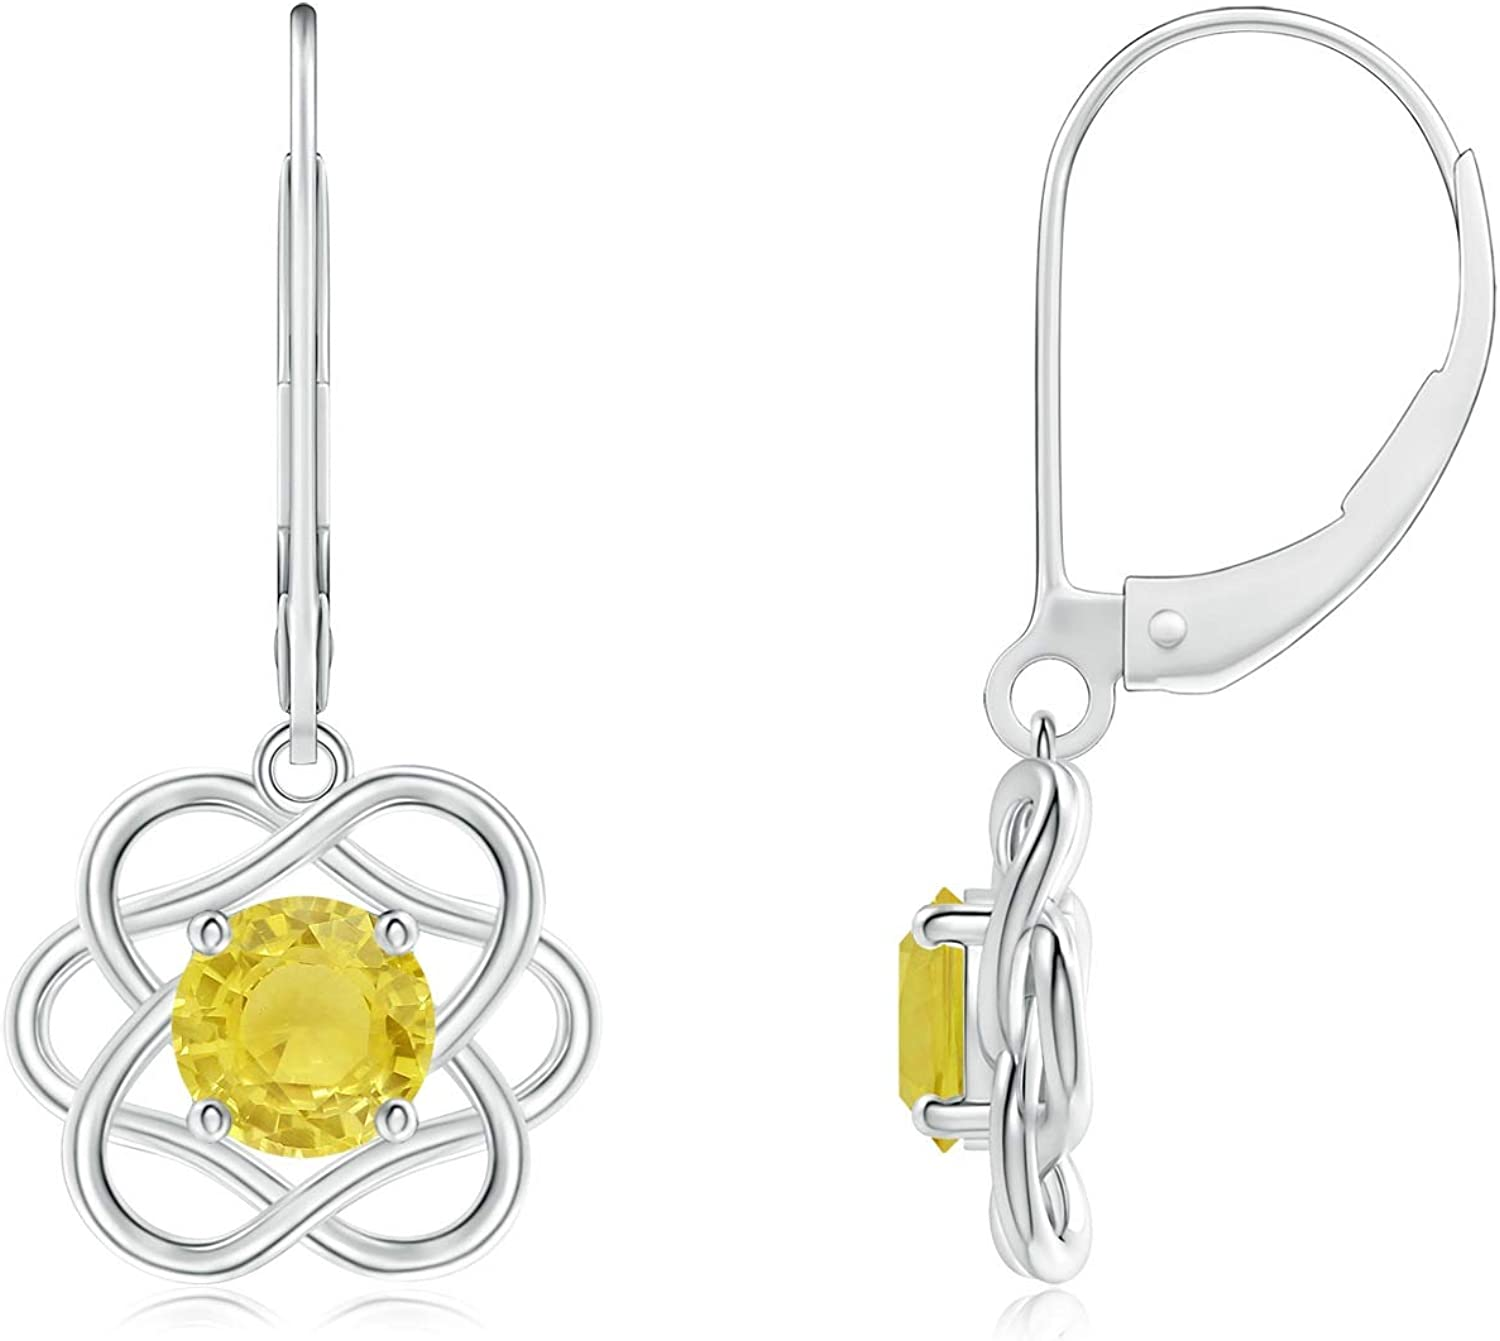 Solitaire Yellow Sapphire Intertwined Flower Overseas parallel import regular item 5m Dangle Max 78% OFF Earrings